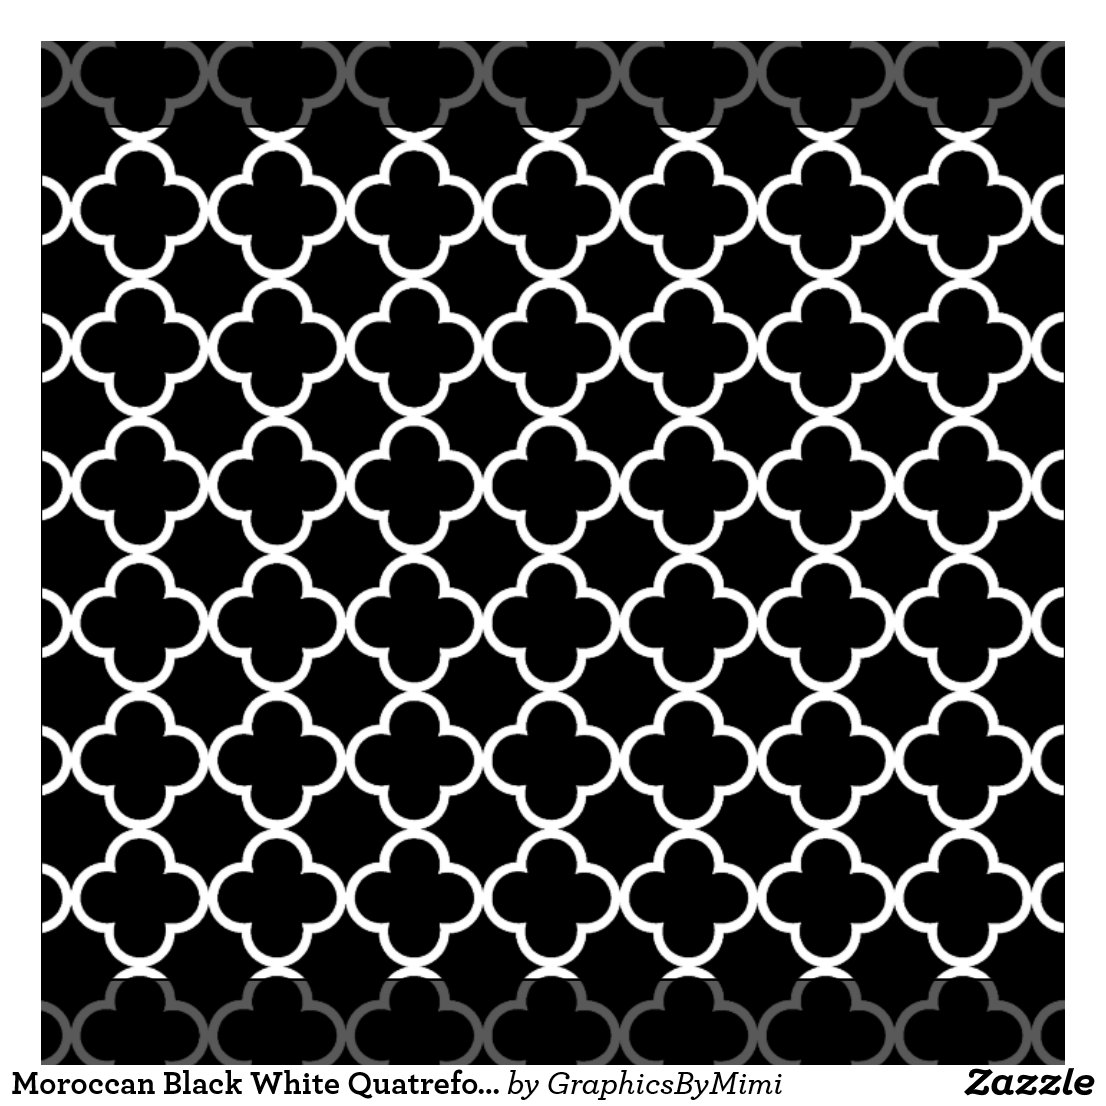 Moroccan geometric pattern royalty free stock photos image 13547078 - Moroccan Black White Moroccan Pattern Black And White